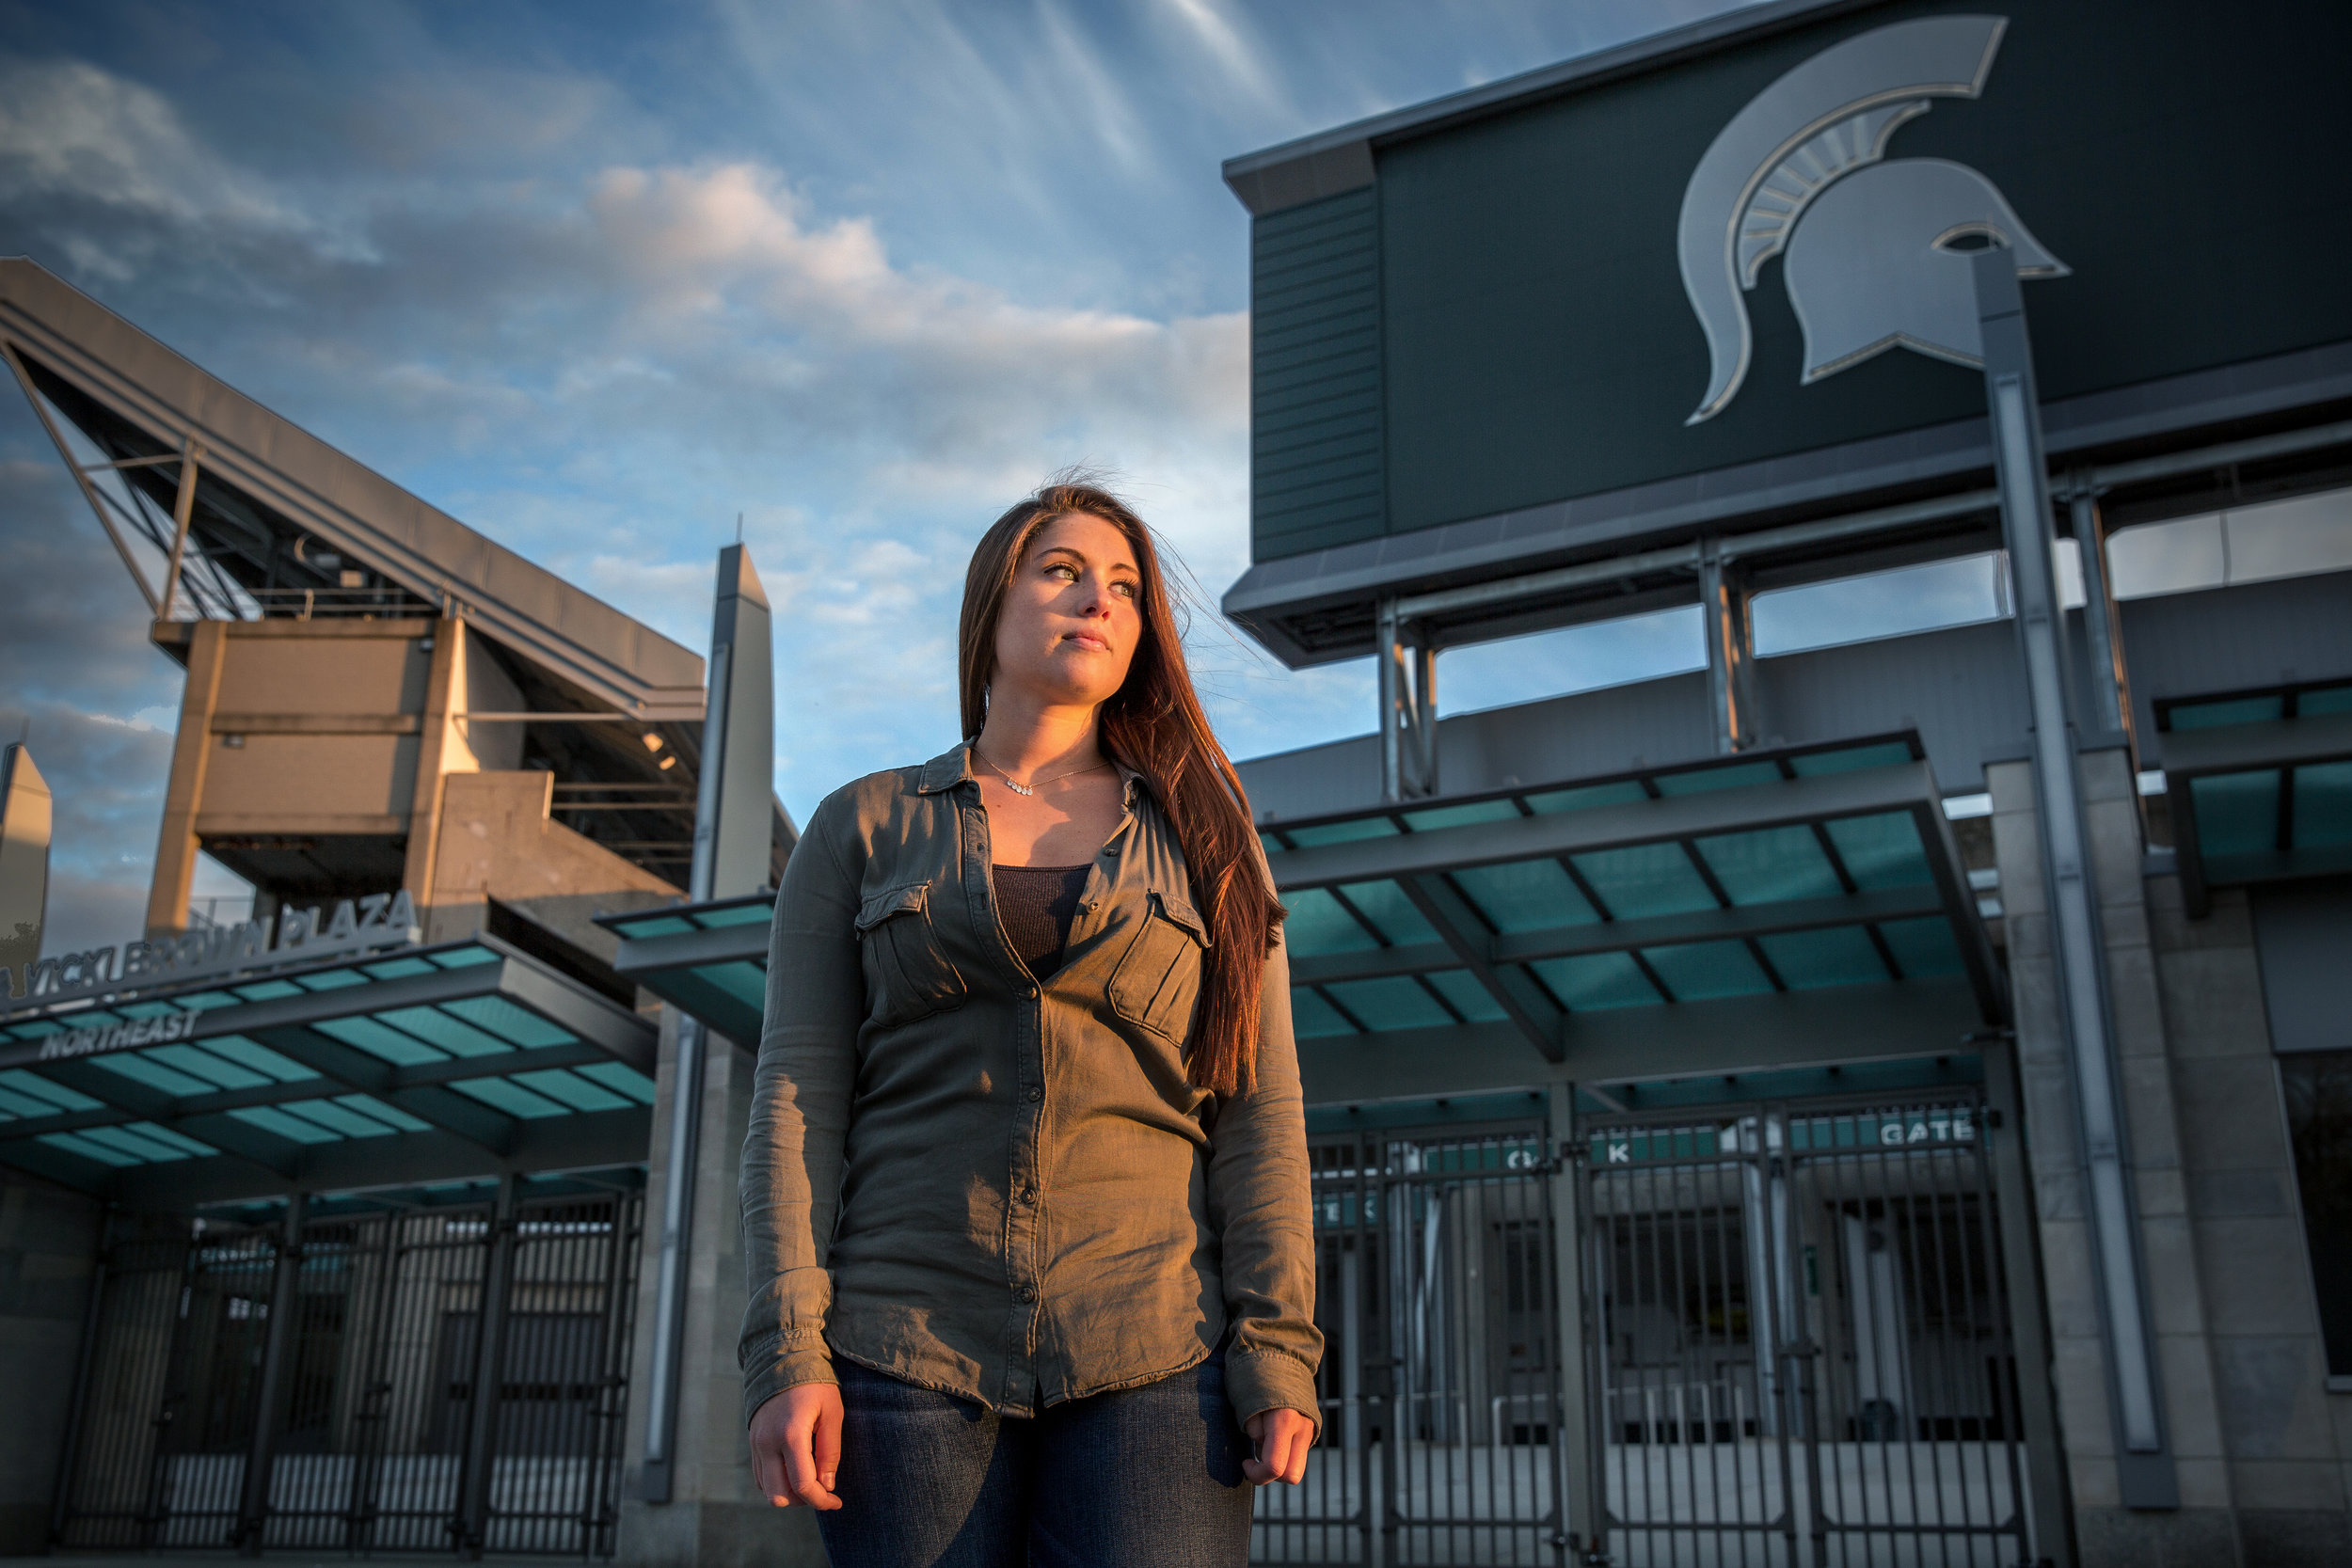 "Rachel Sienkowski, 21, is a junior at Michigan State University. In the fall semester of her freshman year, she was at a tailgate party before a football game. She said she had one or two drinks, and then a guy she didn't know approached her and they started talking. The mext thing she remembers, was waking up in her dorm room with him and a cut on her head. She has a brief memory of him being on top of her, but can't remember much more. She was taken to the hospital to get staples for the wound on her head; the hospital did a rape kit and police took her statement, but nothing ever came of it. She isn't sure whether the sex was consensual or rape. She also said she'd been coerced into sex in other situations, including with an ex-boyfriend who ignored her verbal ""no""."